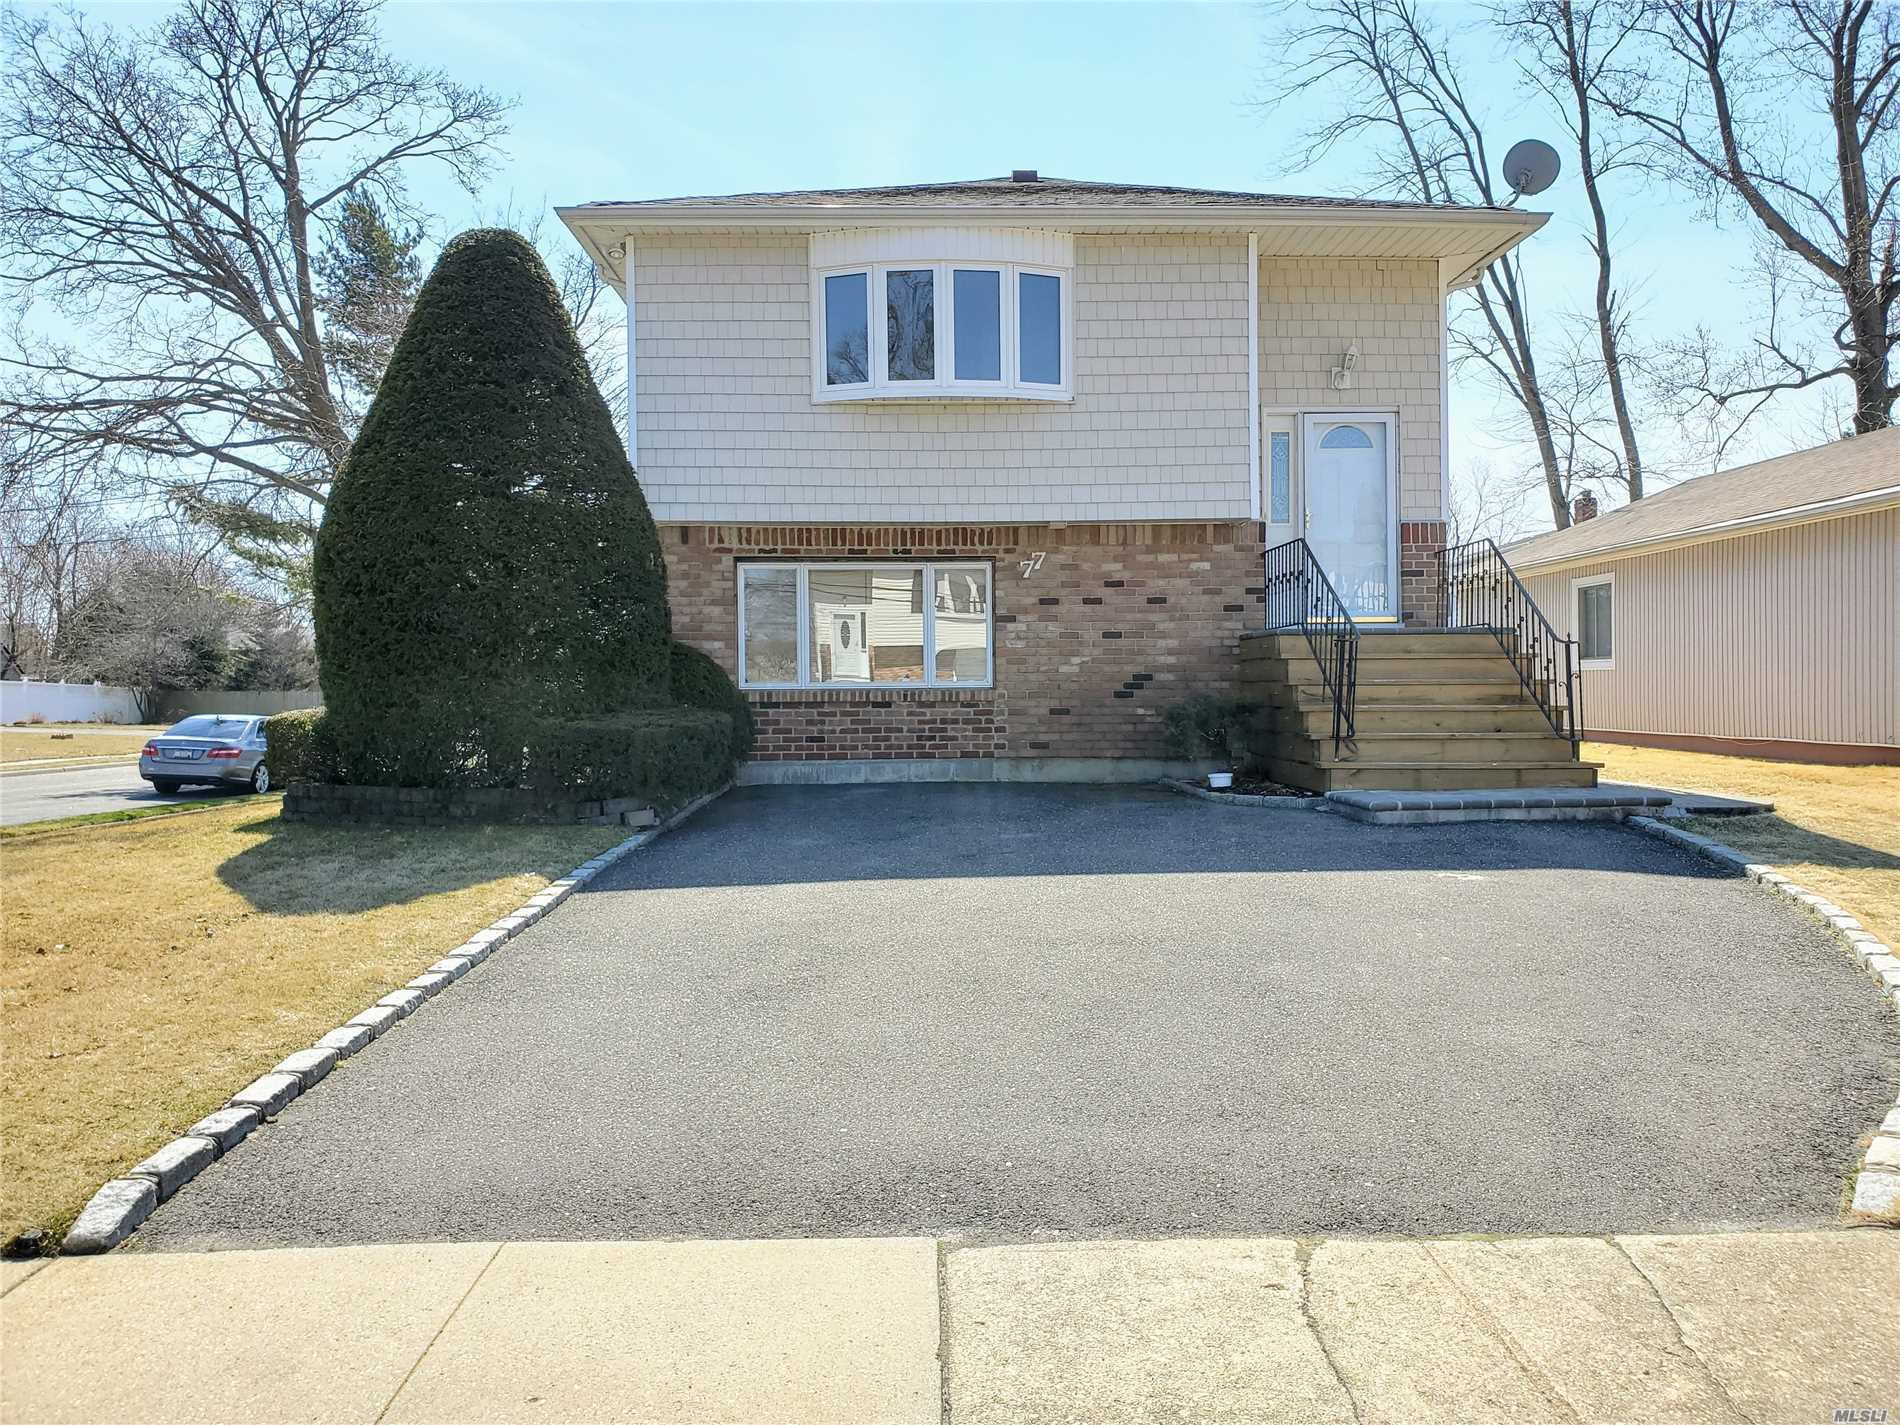 Great opportunity to own in Massapequa! 5 bedrooms and 3 full bathrooms, this Hi-Ranch has room for the whole family. Central AC keeps the house cool and on the outside vinyl fencing and a brick walkway leading to a patio is excellent for entertaining guests! Field of Dreams Park is walking distance up the road for the kids. Sunrise Highway, restaurants on Merrick Rd, and Sunrise Mall are within a 5-minute drive but still far enough to keep your home private from the bustle.